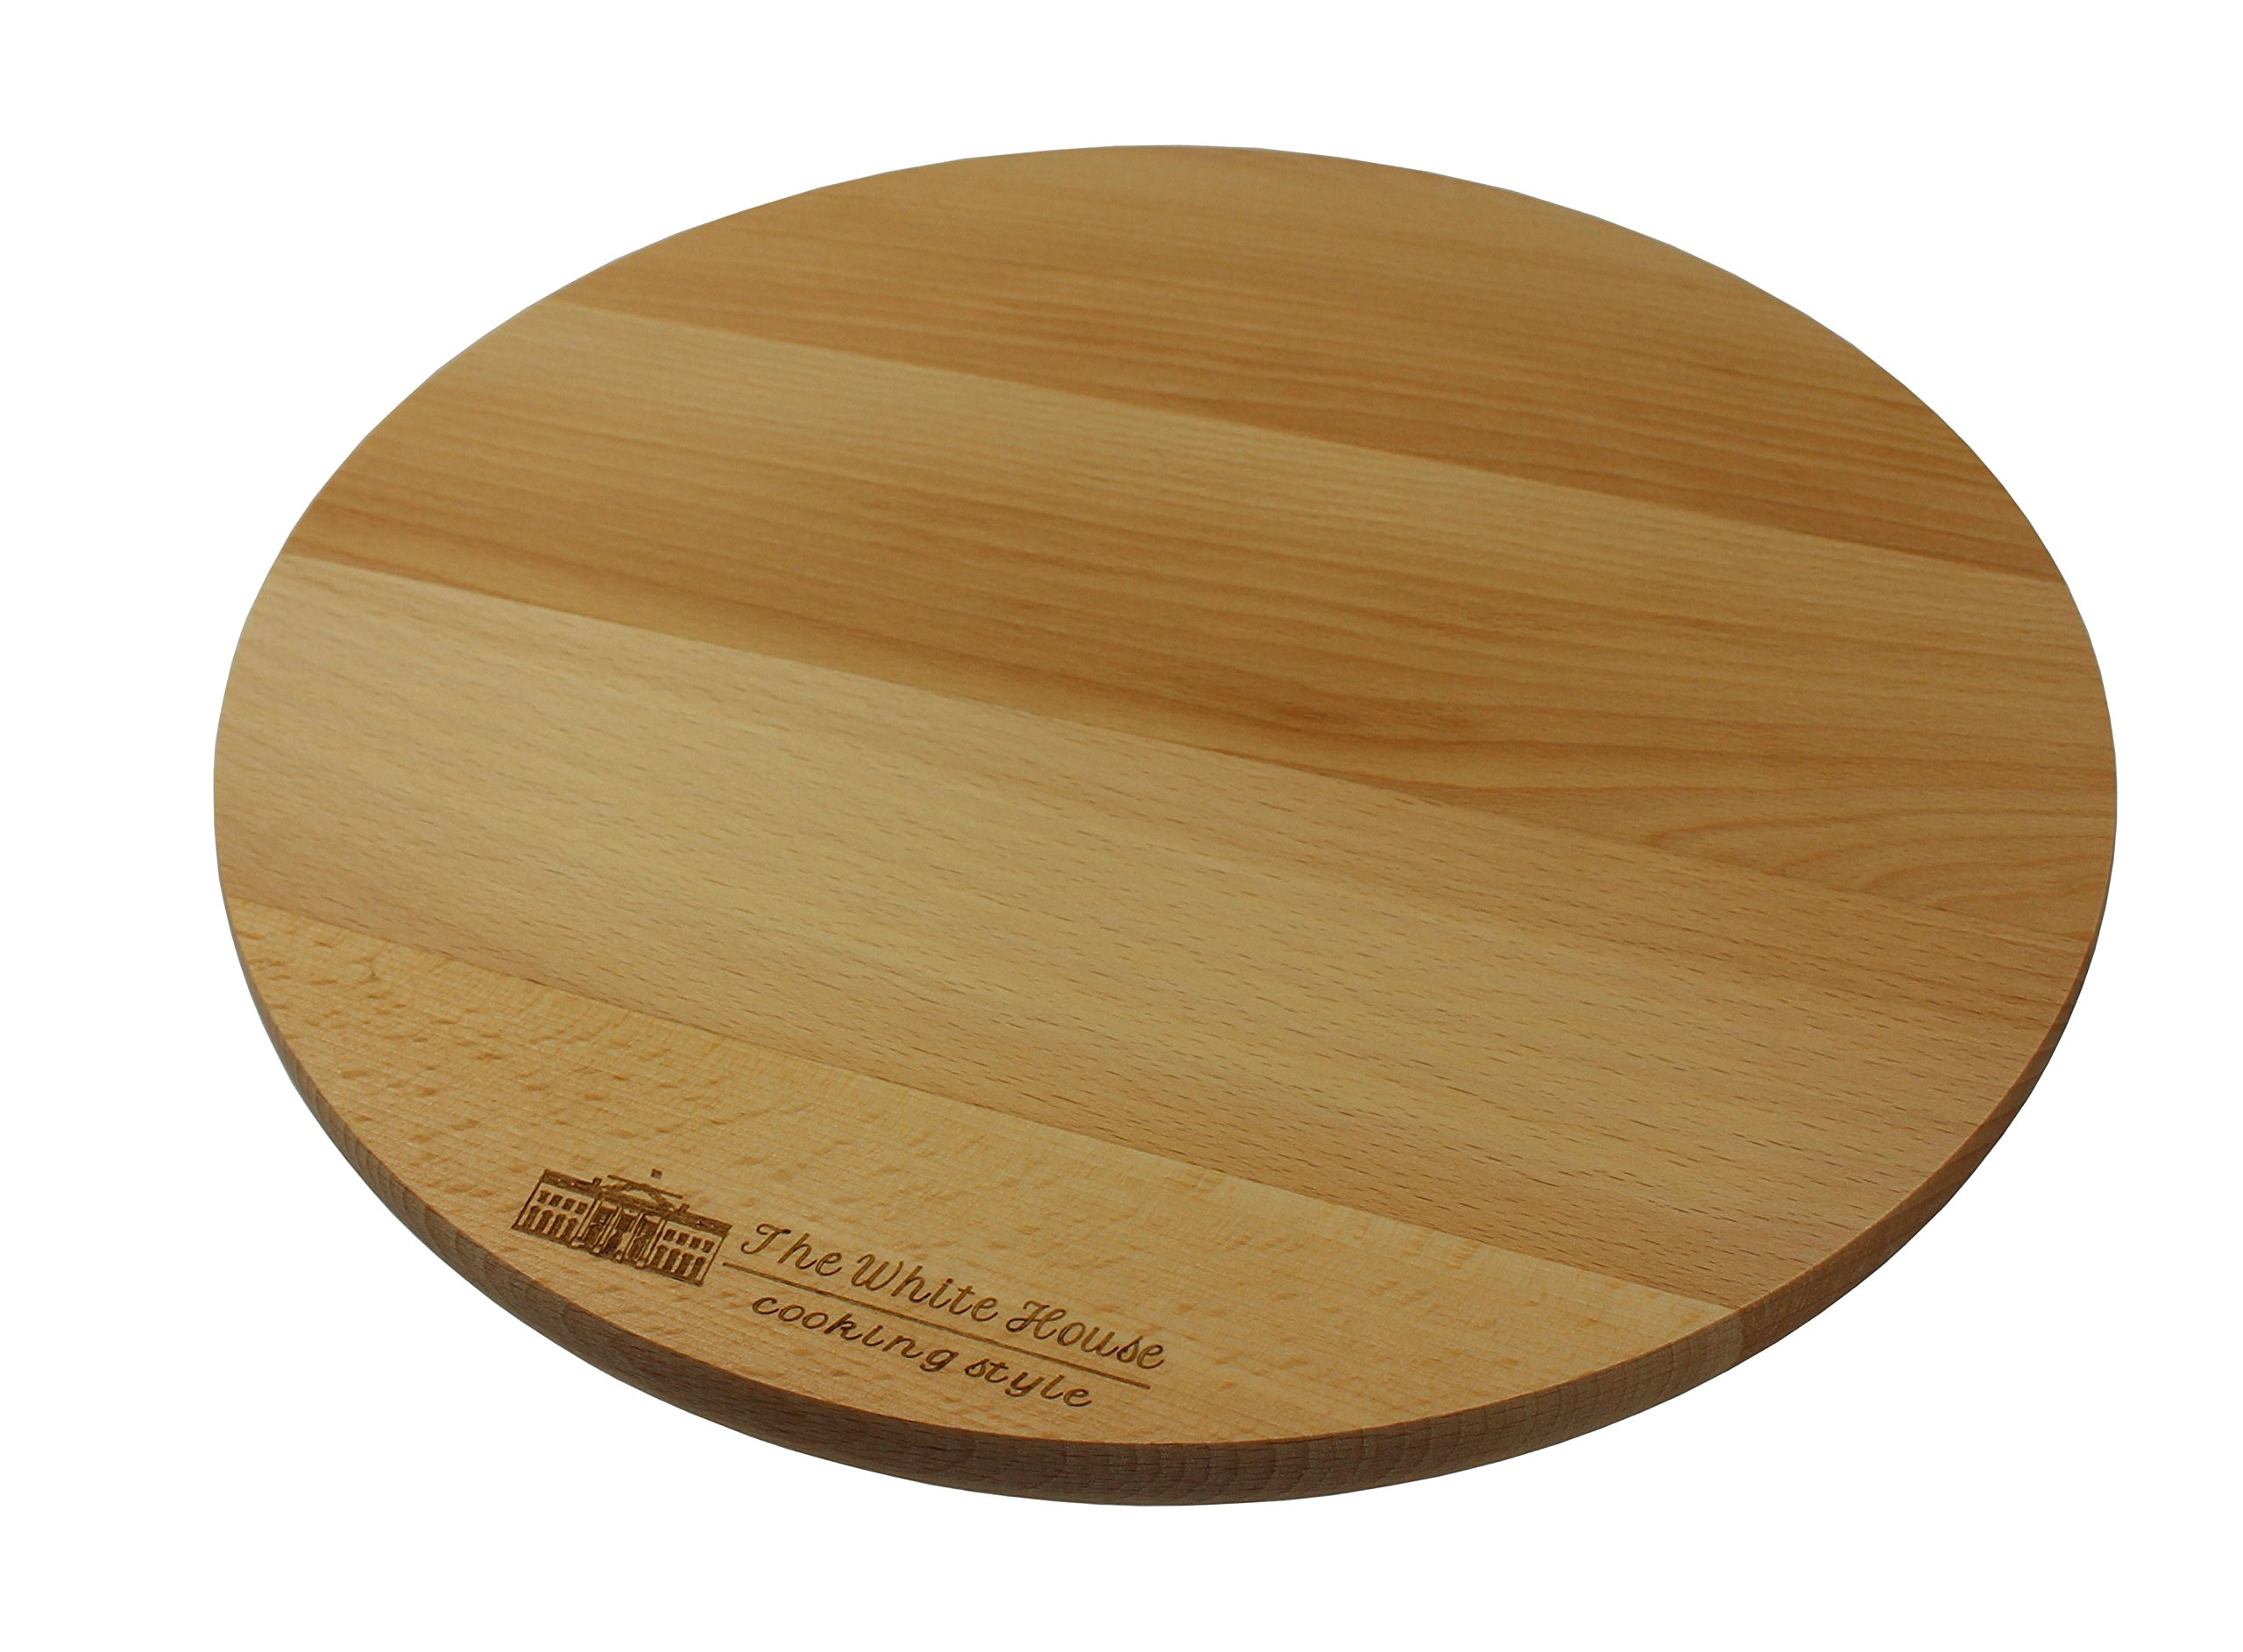 THE WHITE HOUSE cooking style Wooden Rotating Kitchen Board. Turntable Rotating Cake Stand, Pizza Board, Cheese Board, Party Serving Board (11-1/2'')